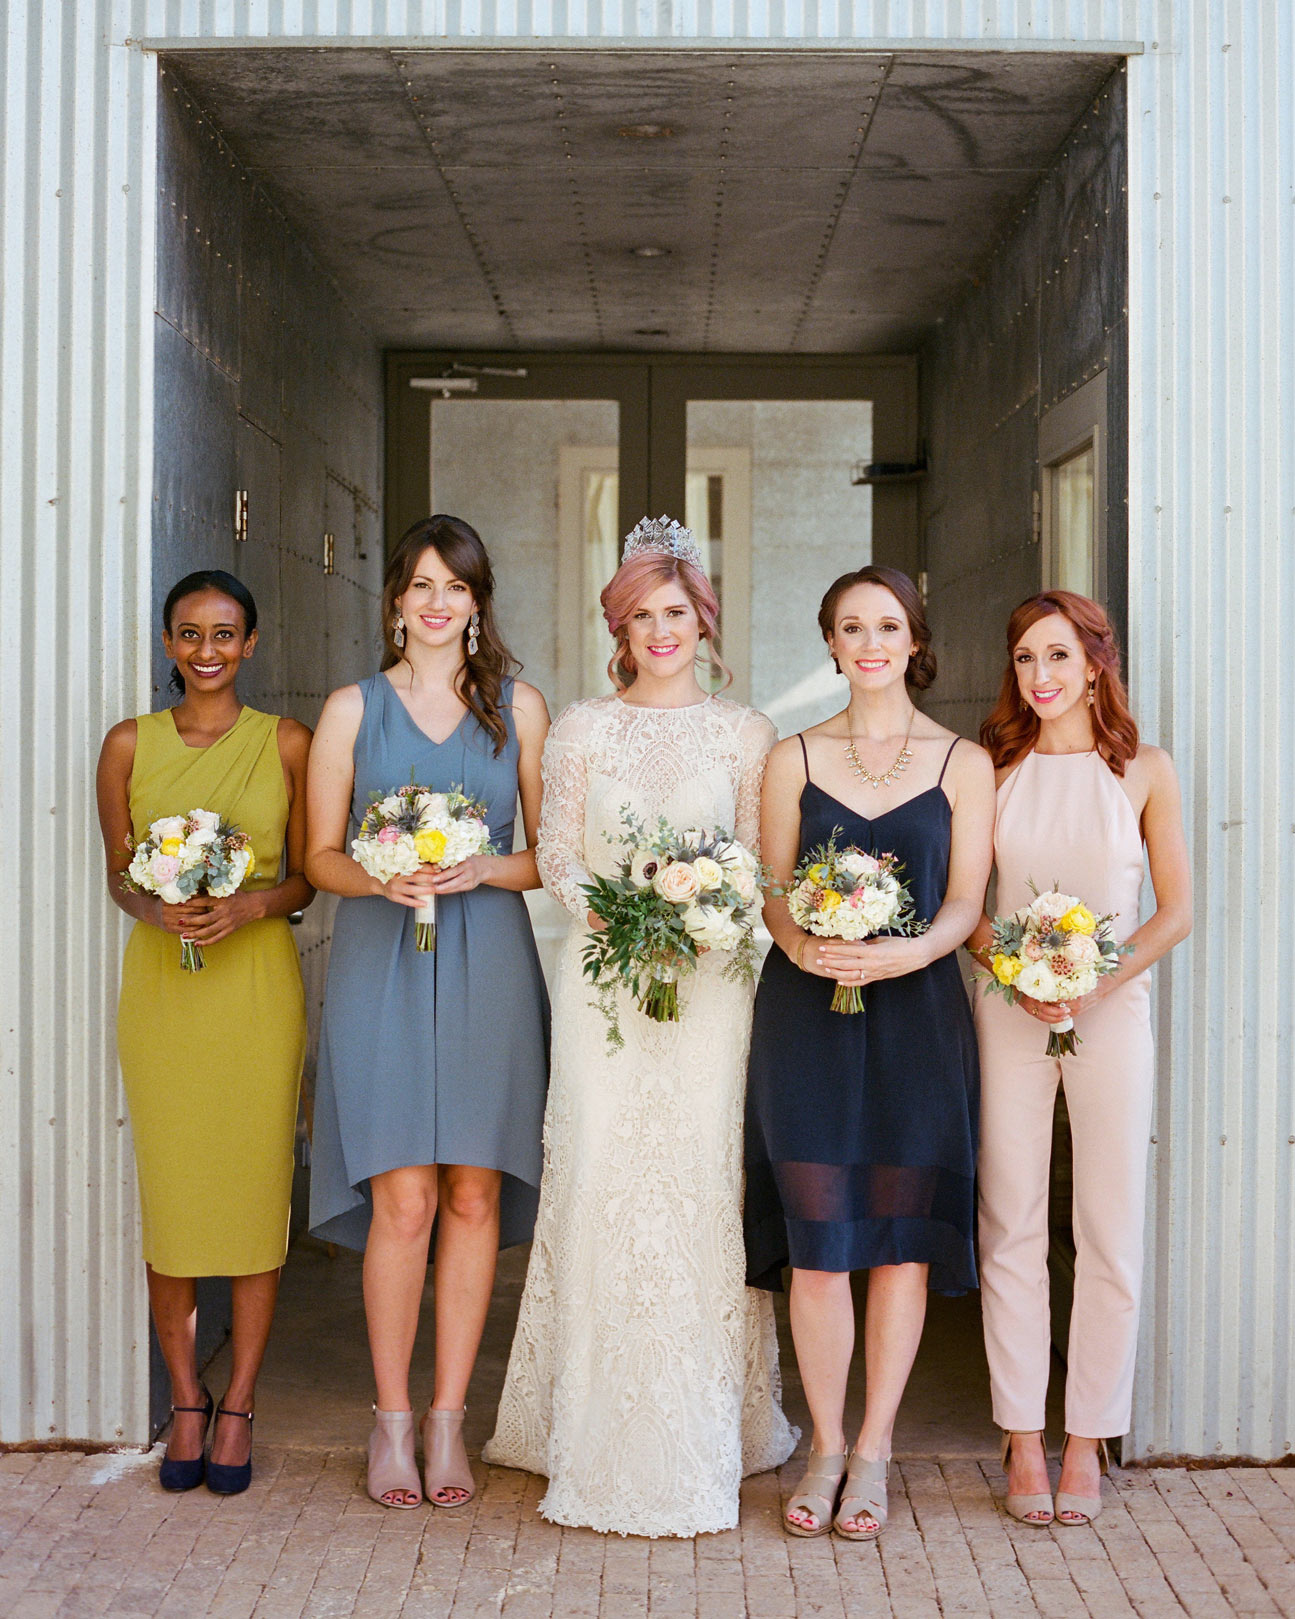 abby-chris-wedding-texas-bridesmaids-0314-s112832-0516.jpg